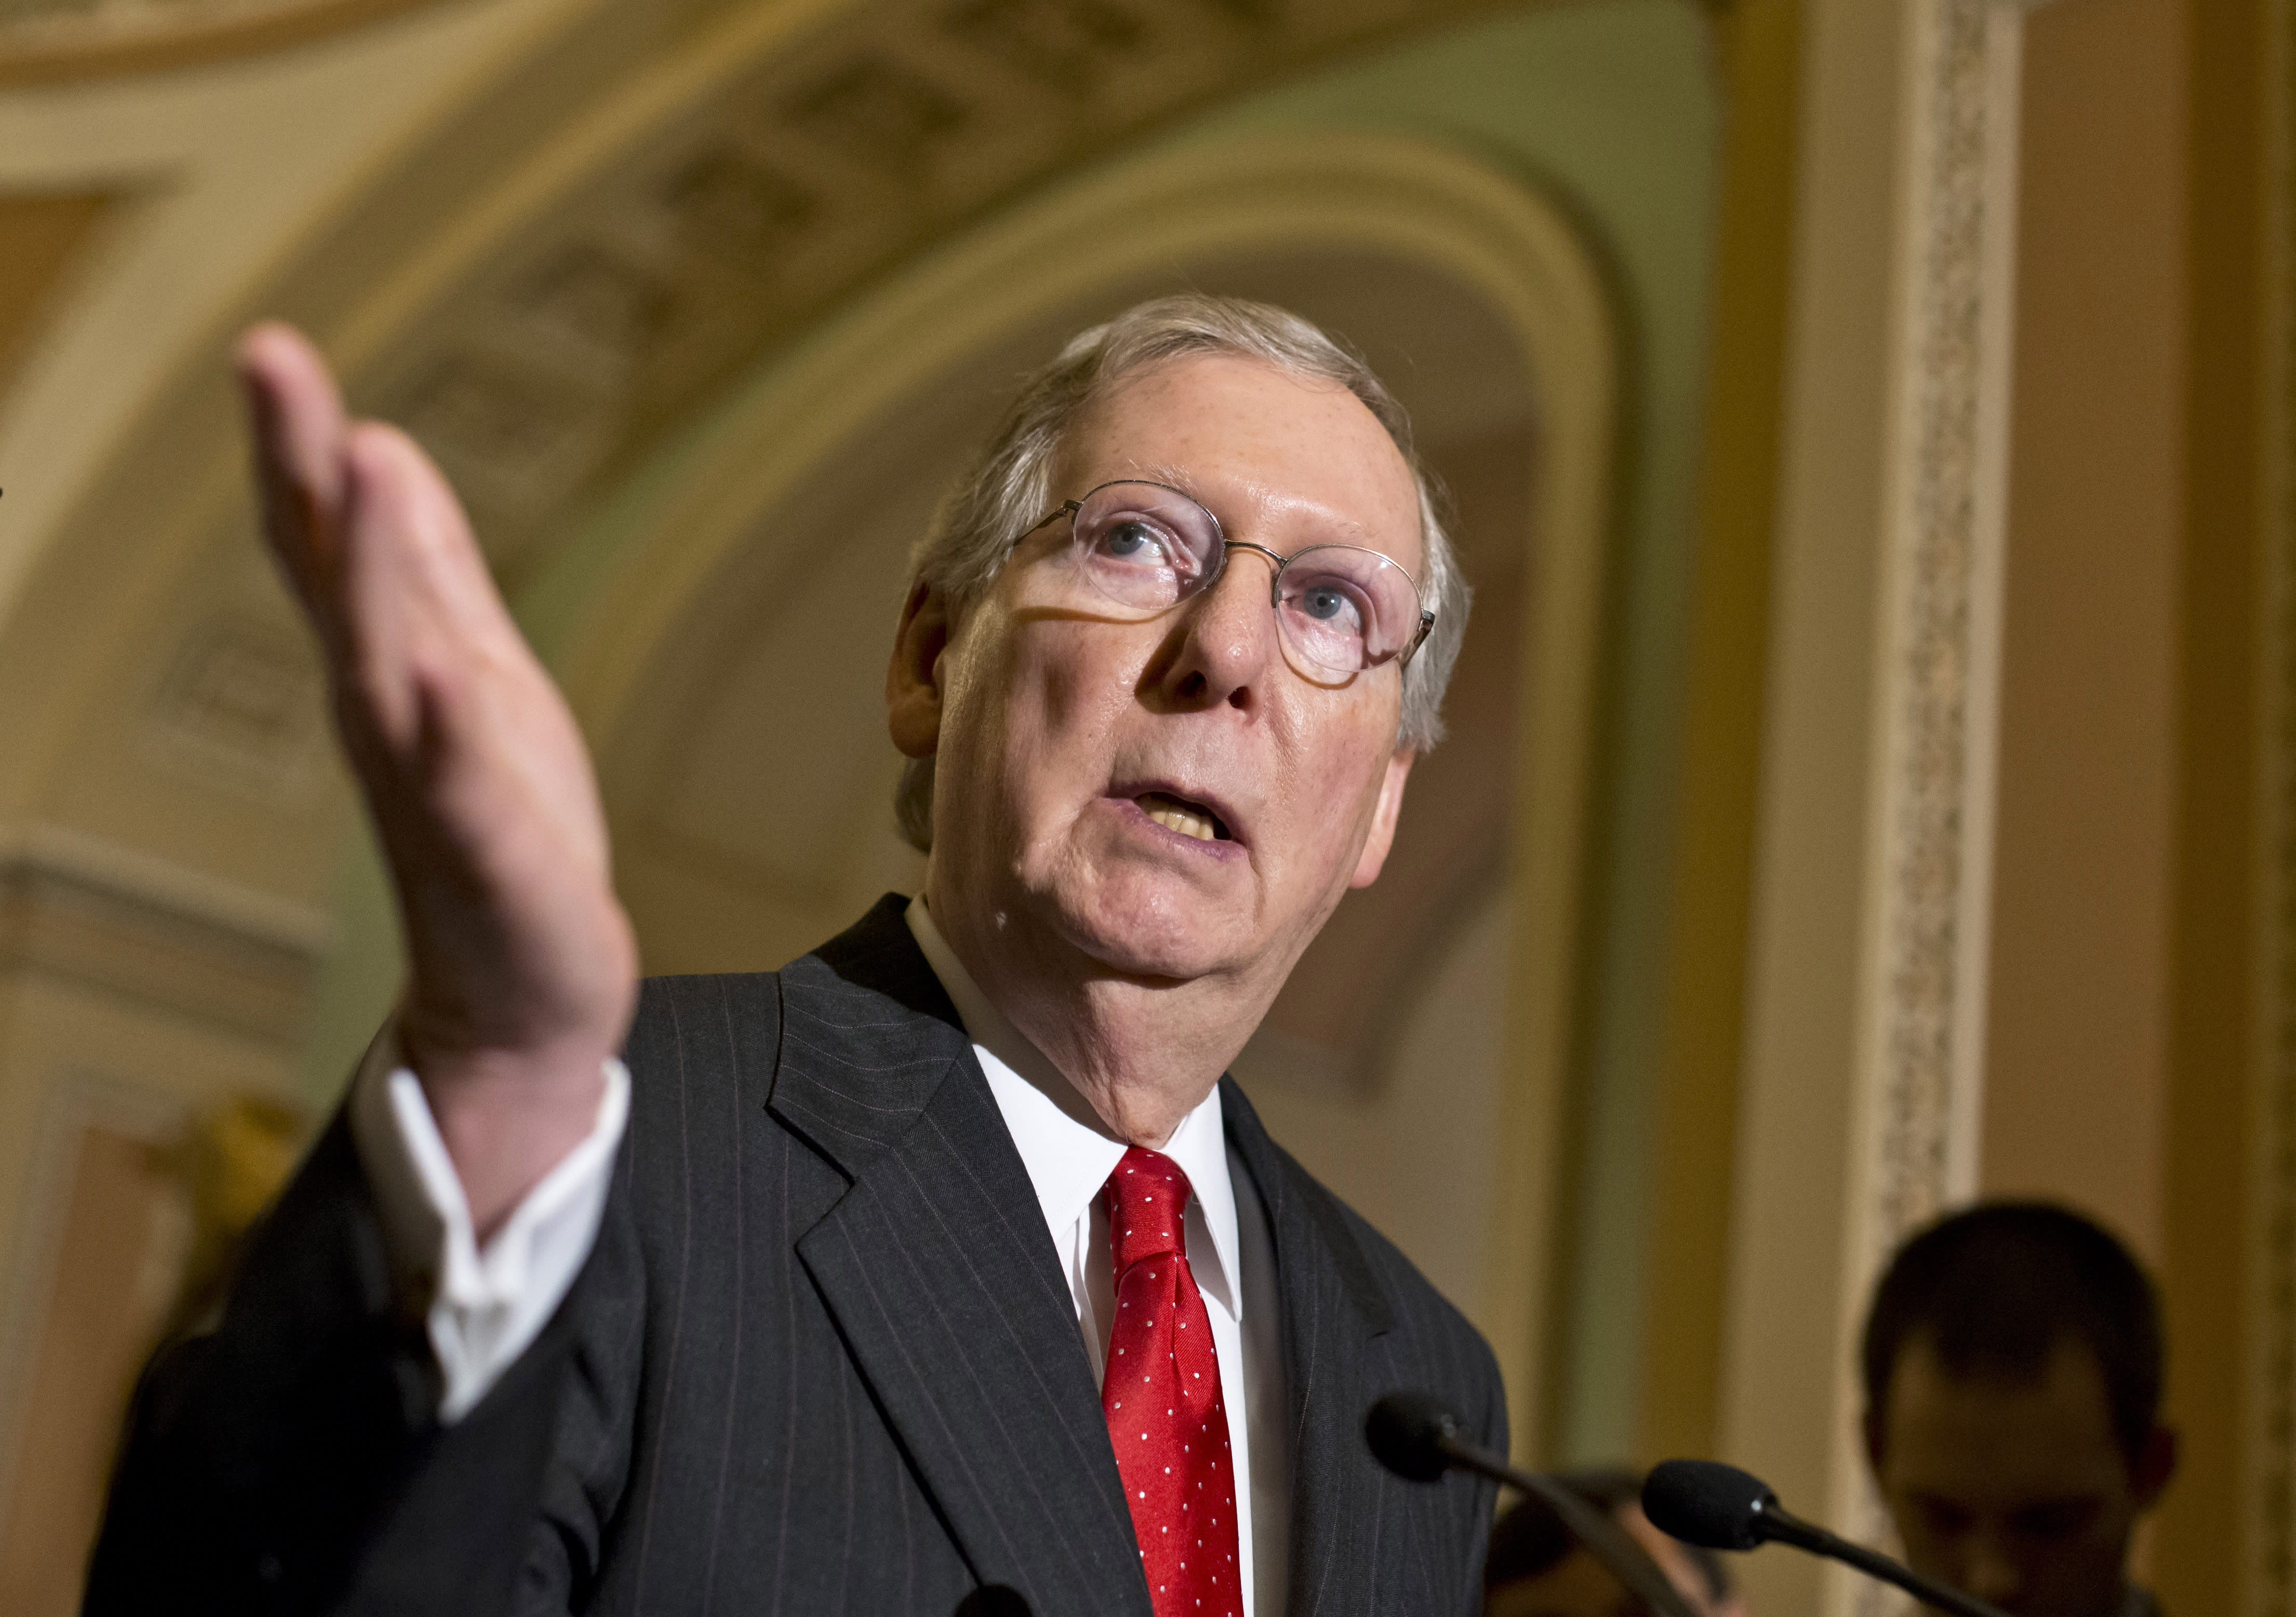 Republicans accuse Obama of exceeding authority